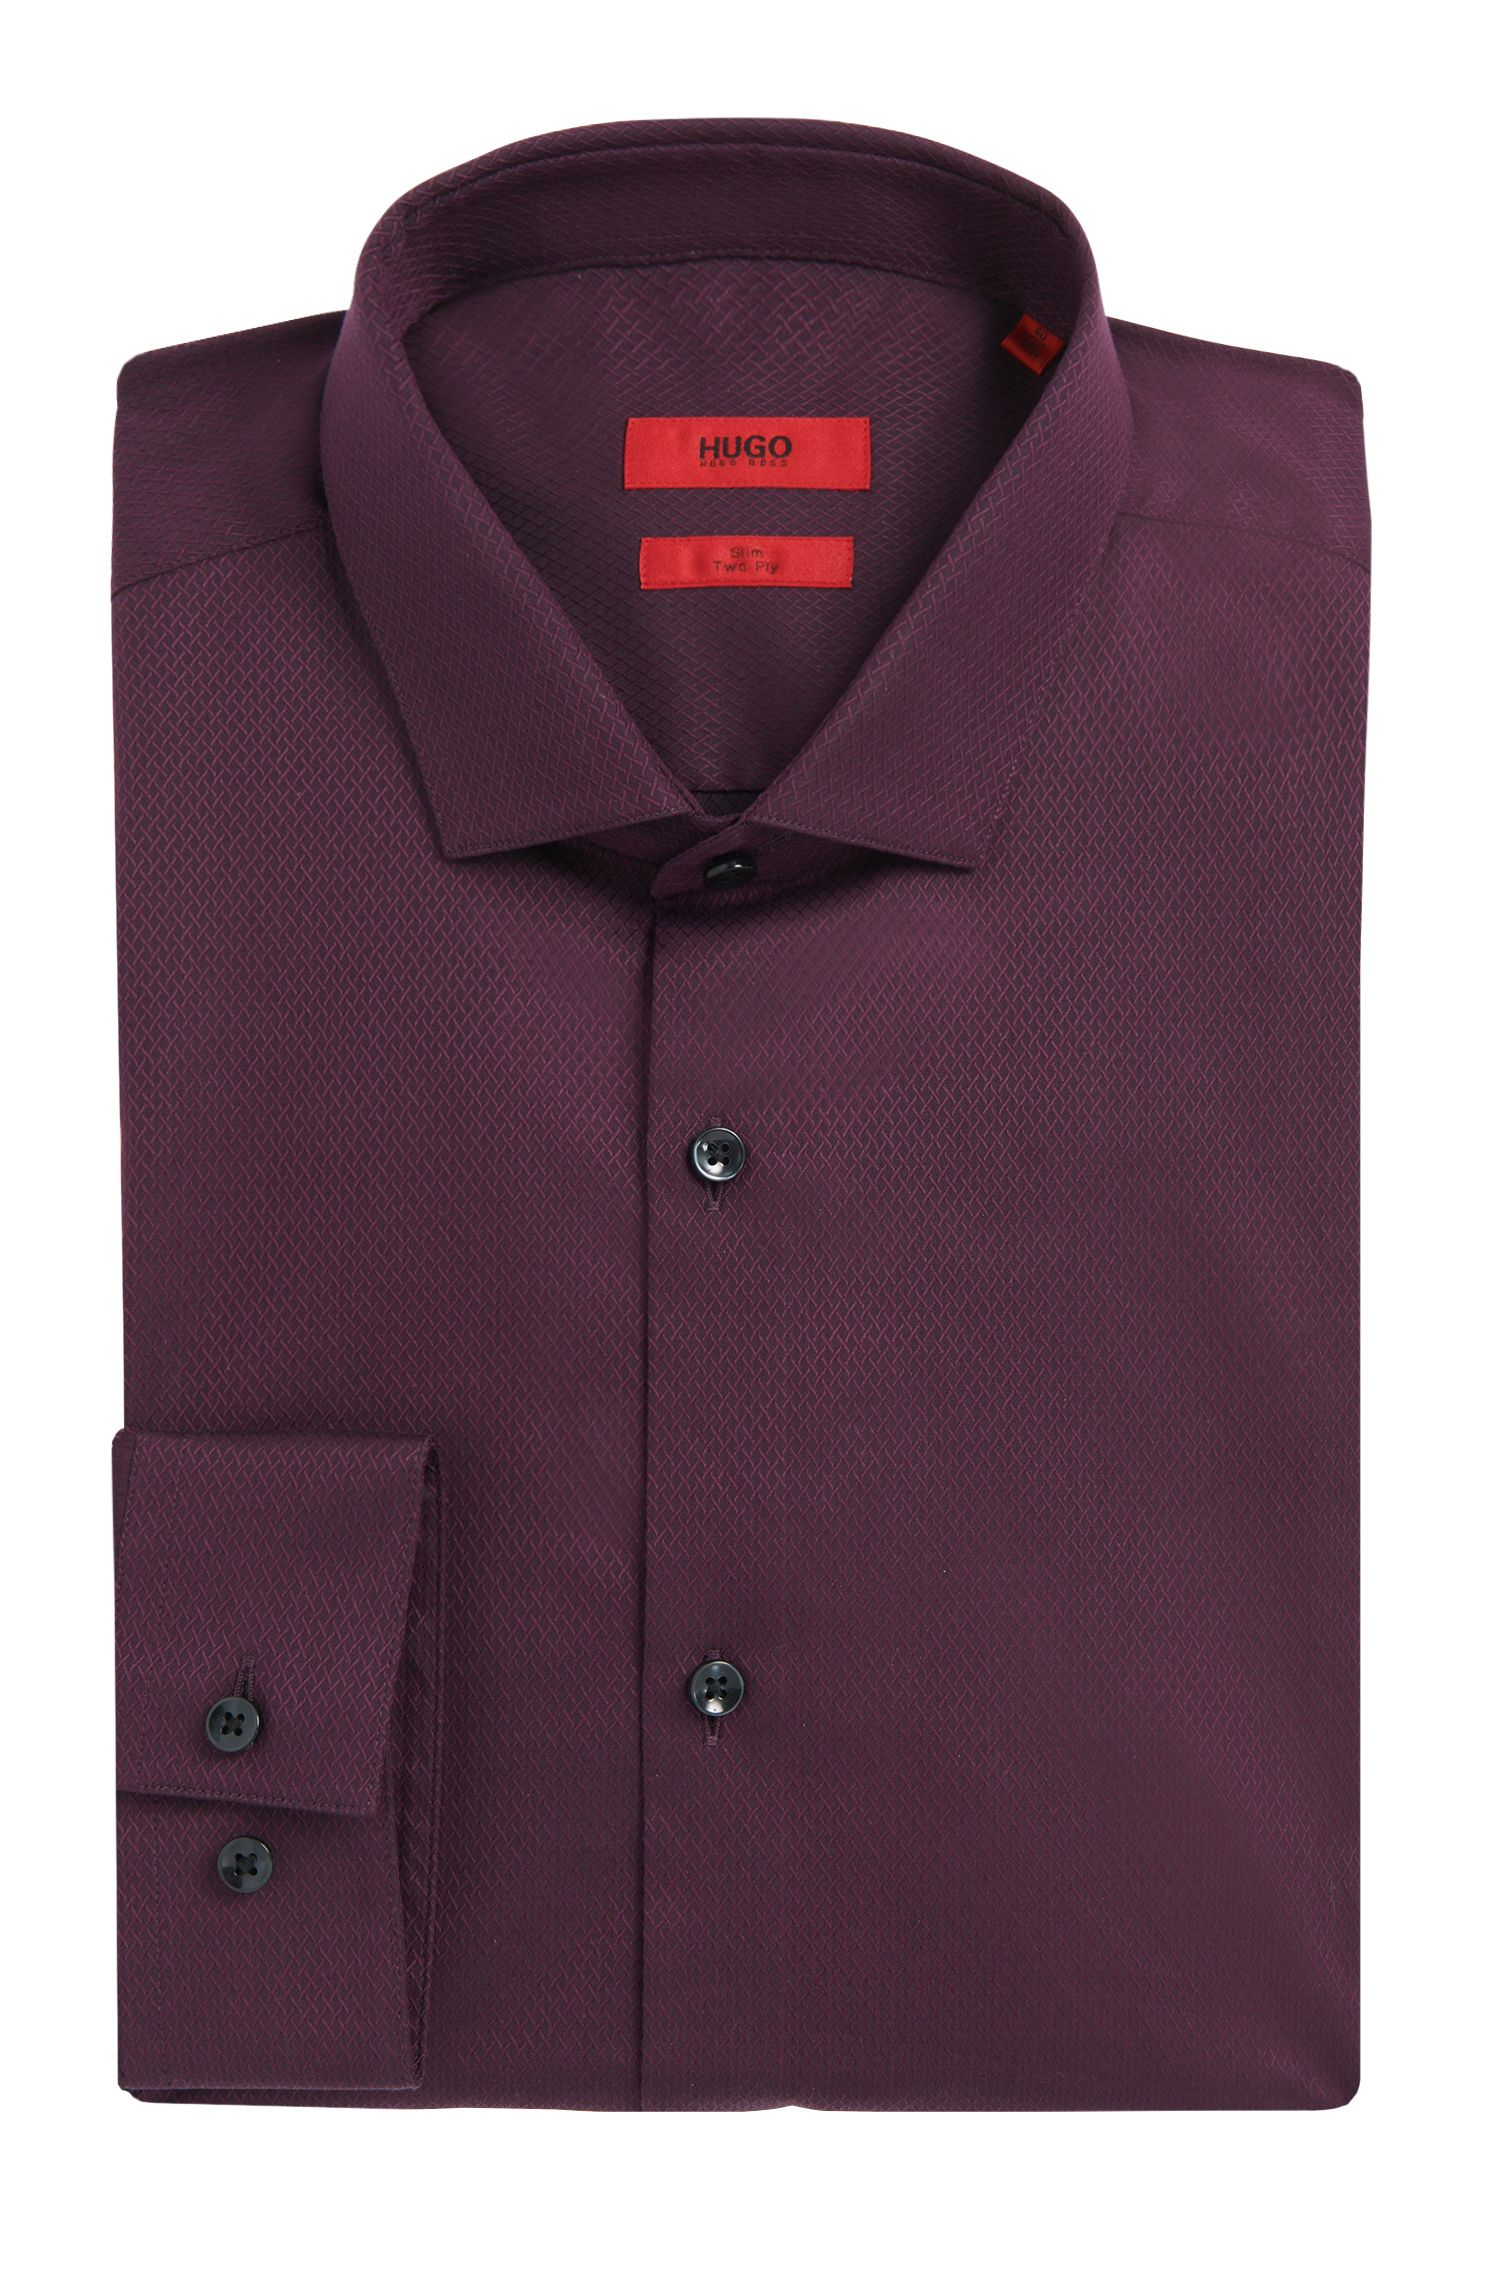 'Erondo' | Slim Fit, 2-Ply Cotton Dress Shirt